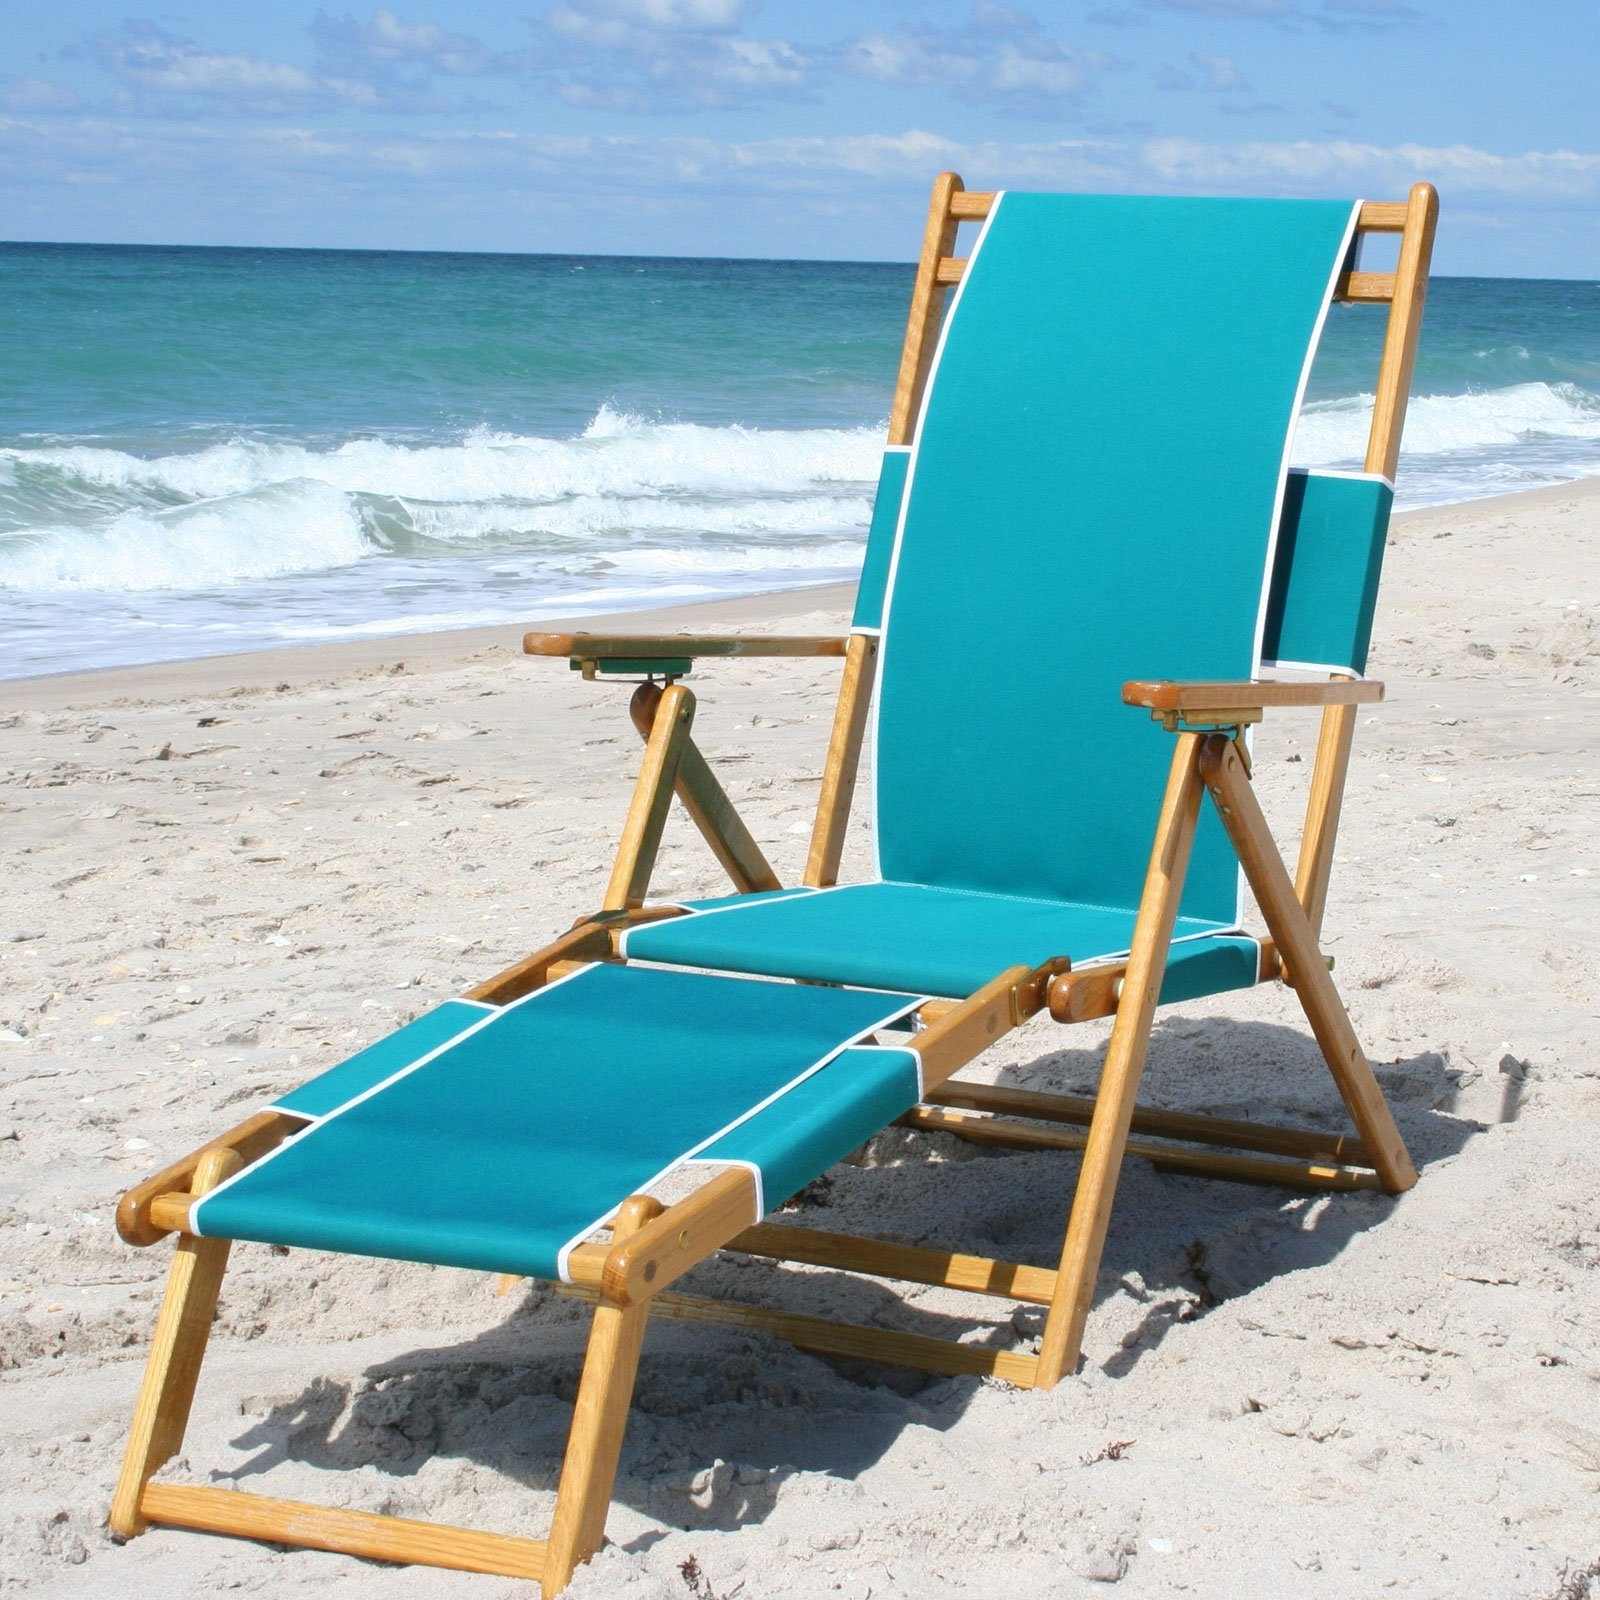 Picture 21 Of 39 – Chaise Lounge Beach Chair Luxury Stylish Beach Pertaining To Recent Ostrich Chaise Lounge Chairs (View 10 of 15)